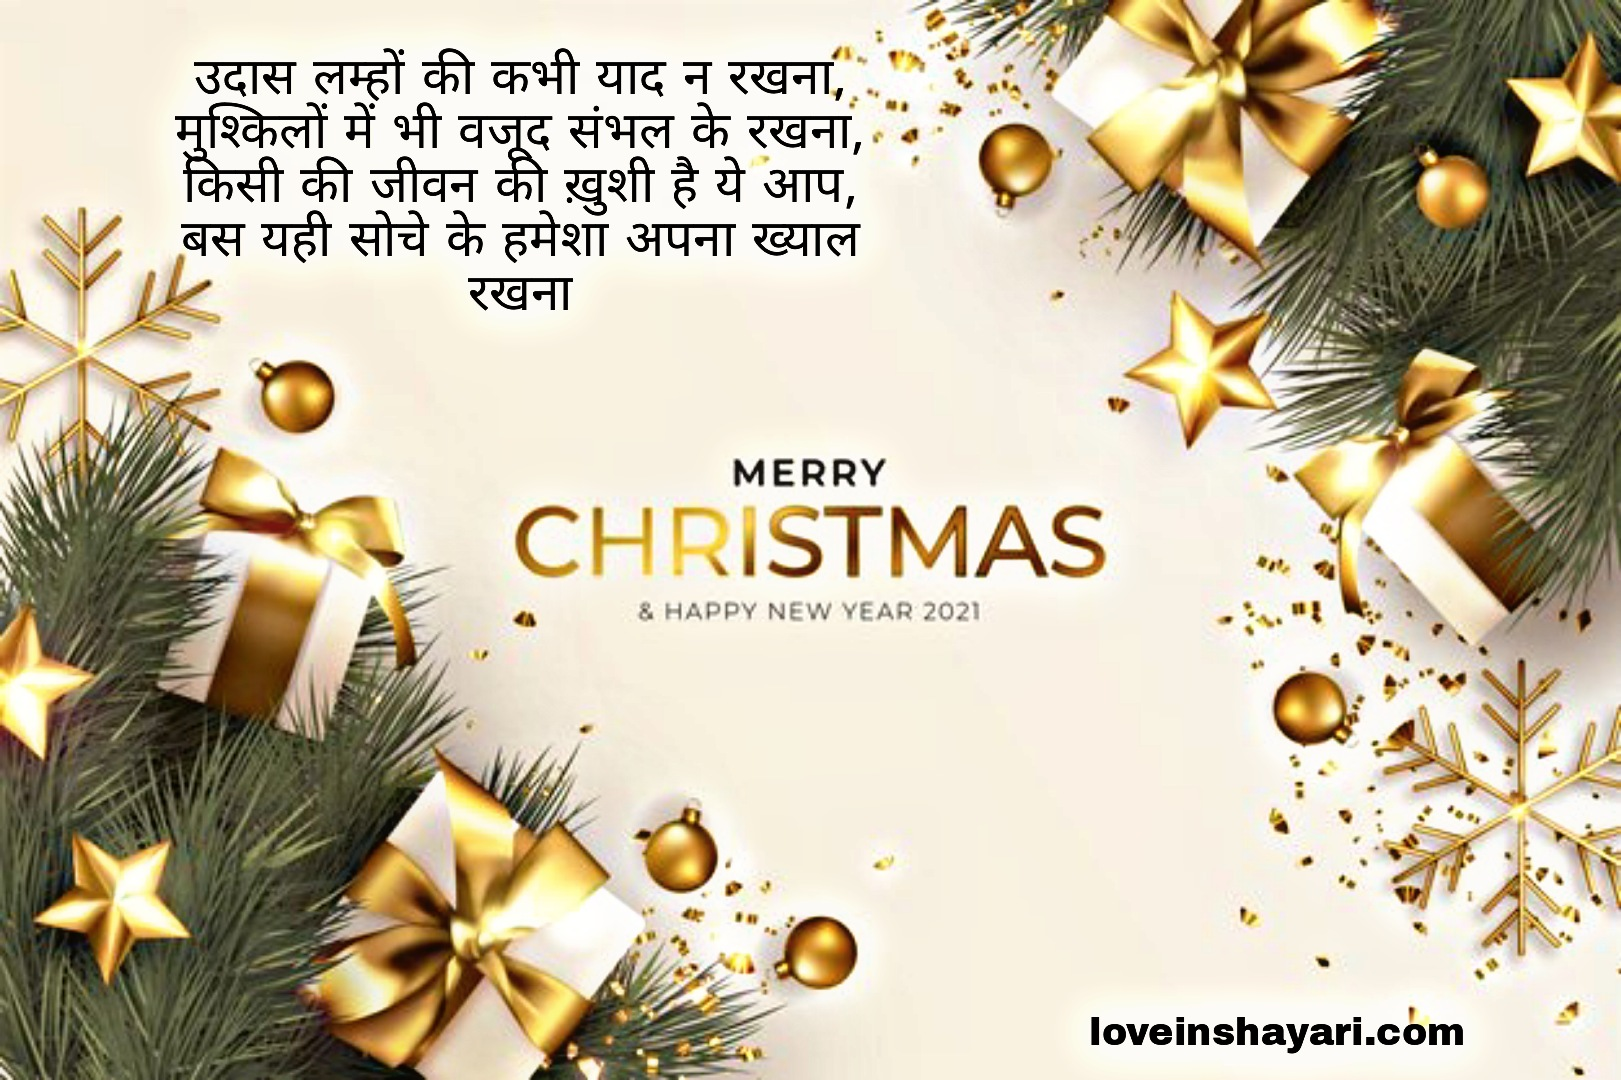 Photo of Merry Christmas wishes shayari quotes messages 2020